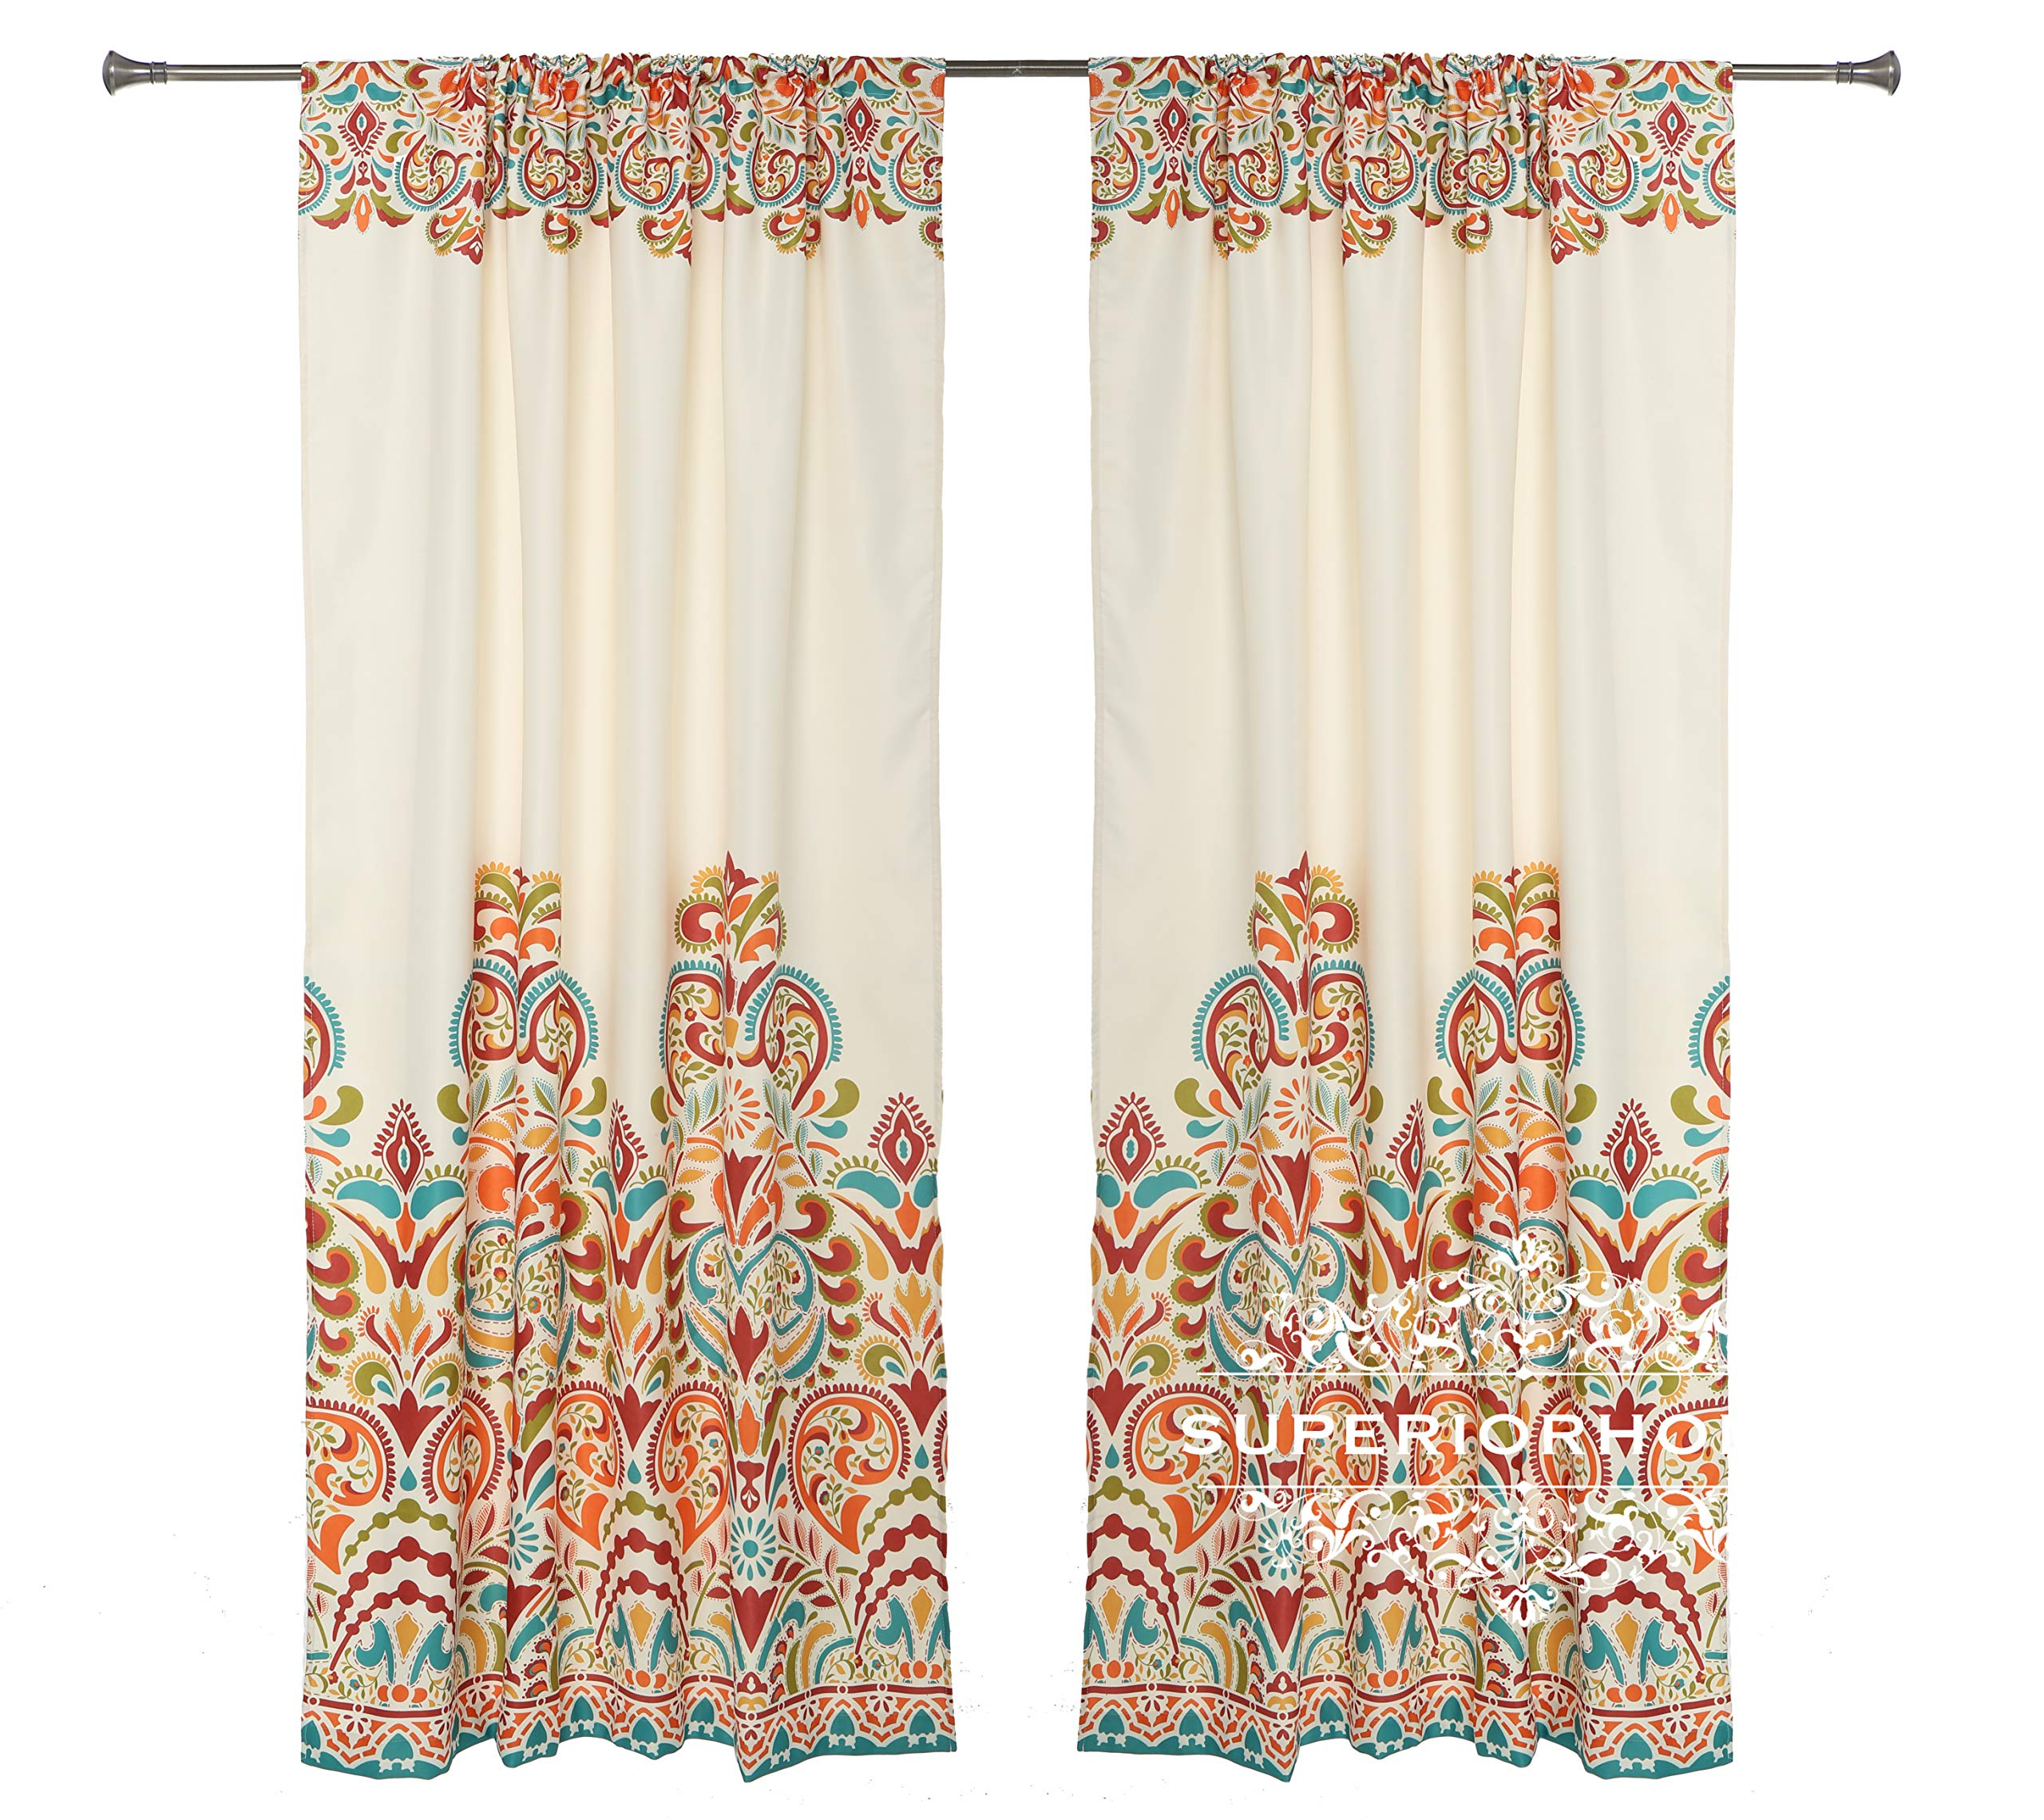 Set of 2 Rod Pocket Brocade Print Curtains, Beige Red Orange Blue Green Window Curtain 52'' x 84'' (Total W 104'') Decorative Curtain Drape Panels - Soft/Heavy Quality Room Darkening Curtains by Sapphire Home